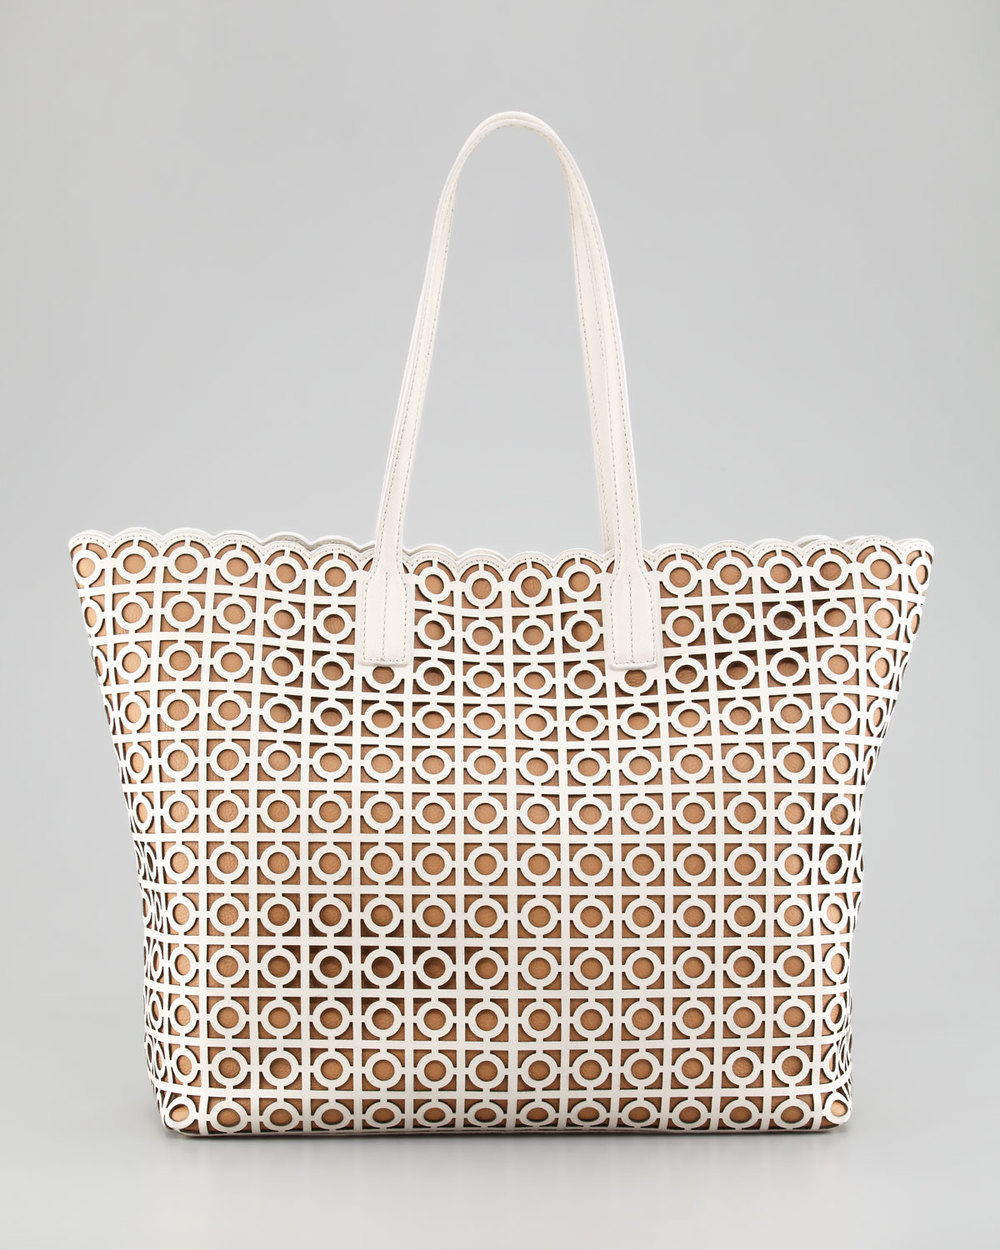 tory-burch-white-kelsey-lasercut-eastwest-tote-bag-product-1-6080679-938965542.jpeg